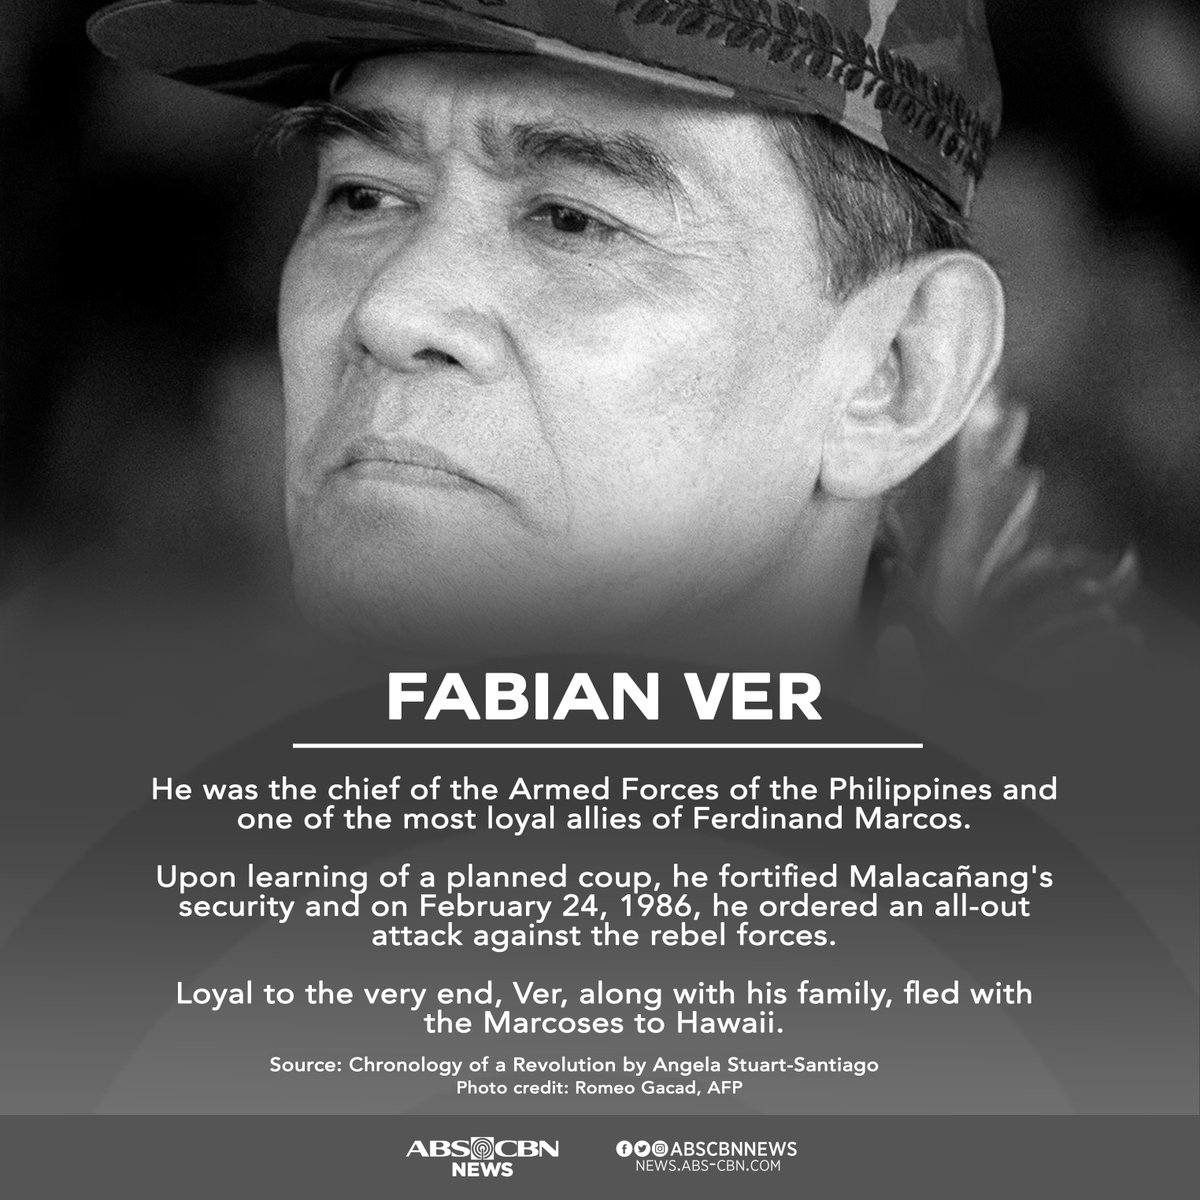 EDSA Key Players: Ver fled to Hawaii with the Marcoses. He remained loyal to his commander-in-chief up to the very end. #EDSA32  More here: https://t.co/2e0VaiT3d2